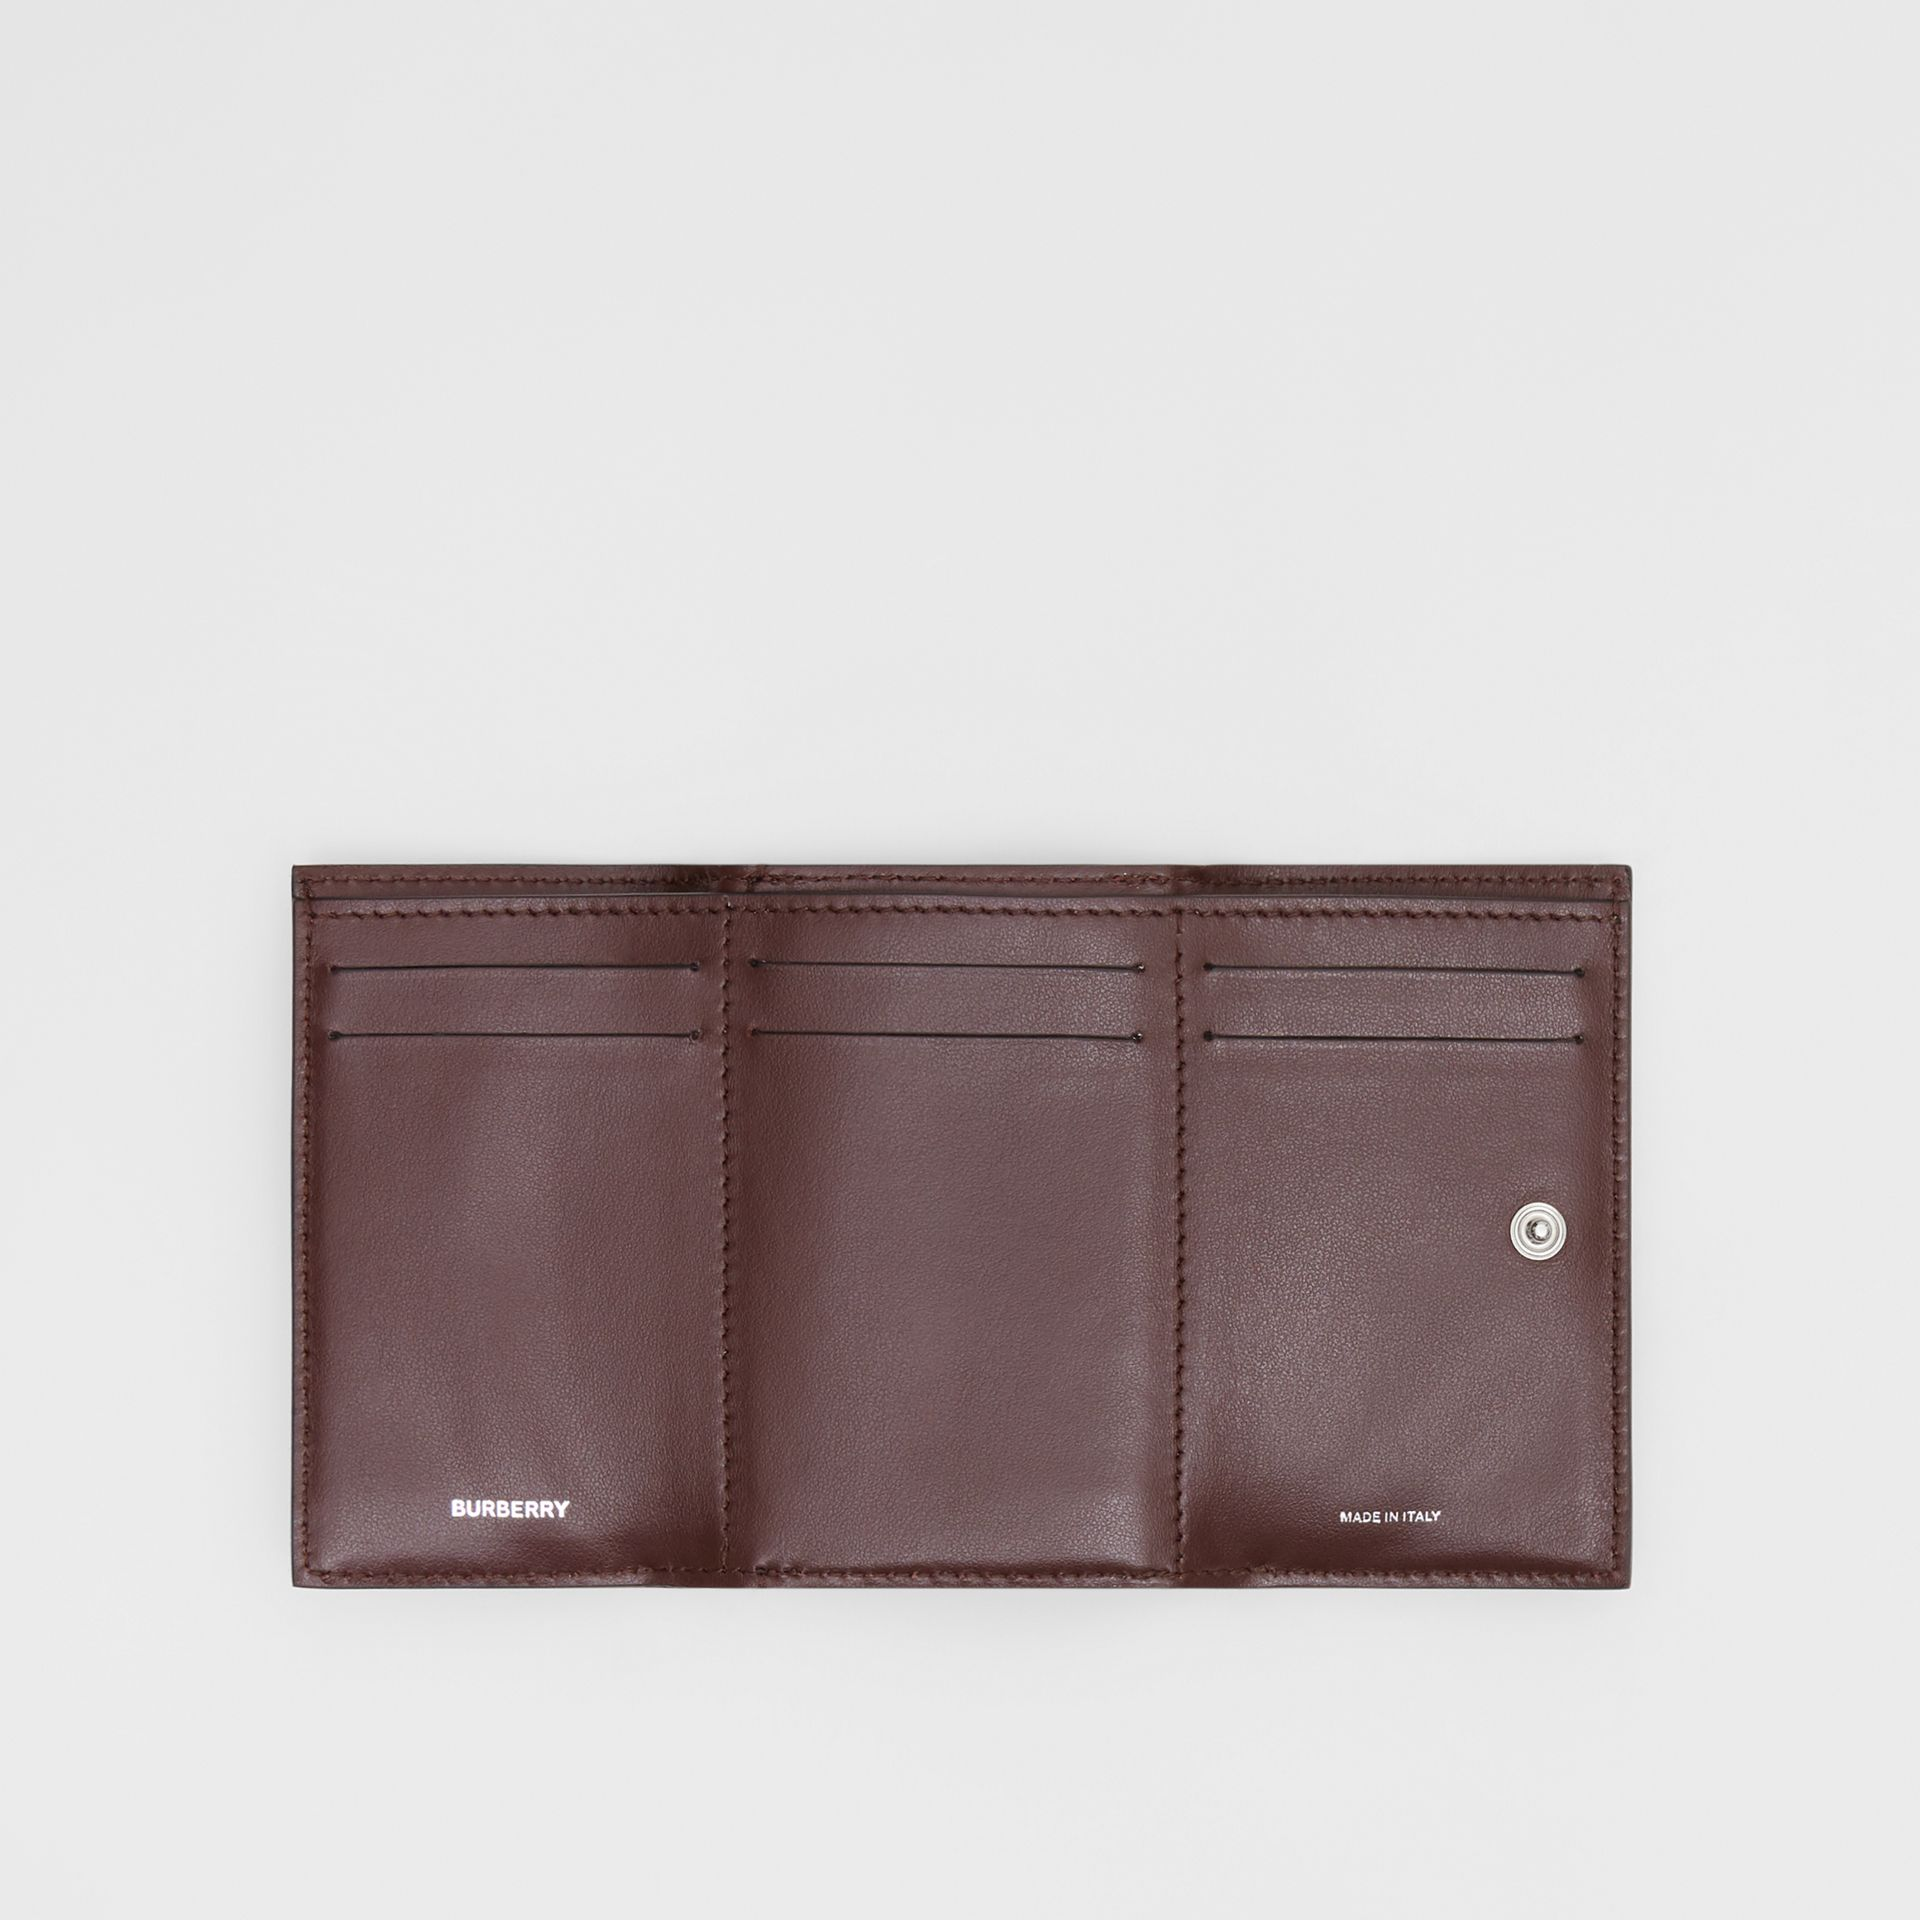 Small Cow Print Leather Folding Wallet in Malt Brown - Women | Burberry Hong Kong S.A.R - gallery image 5